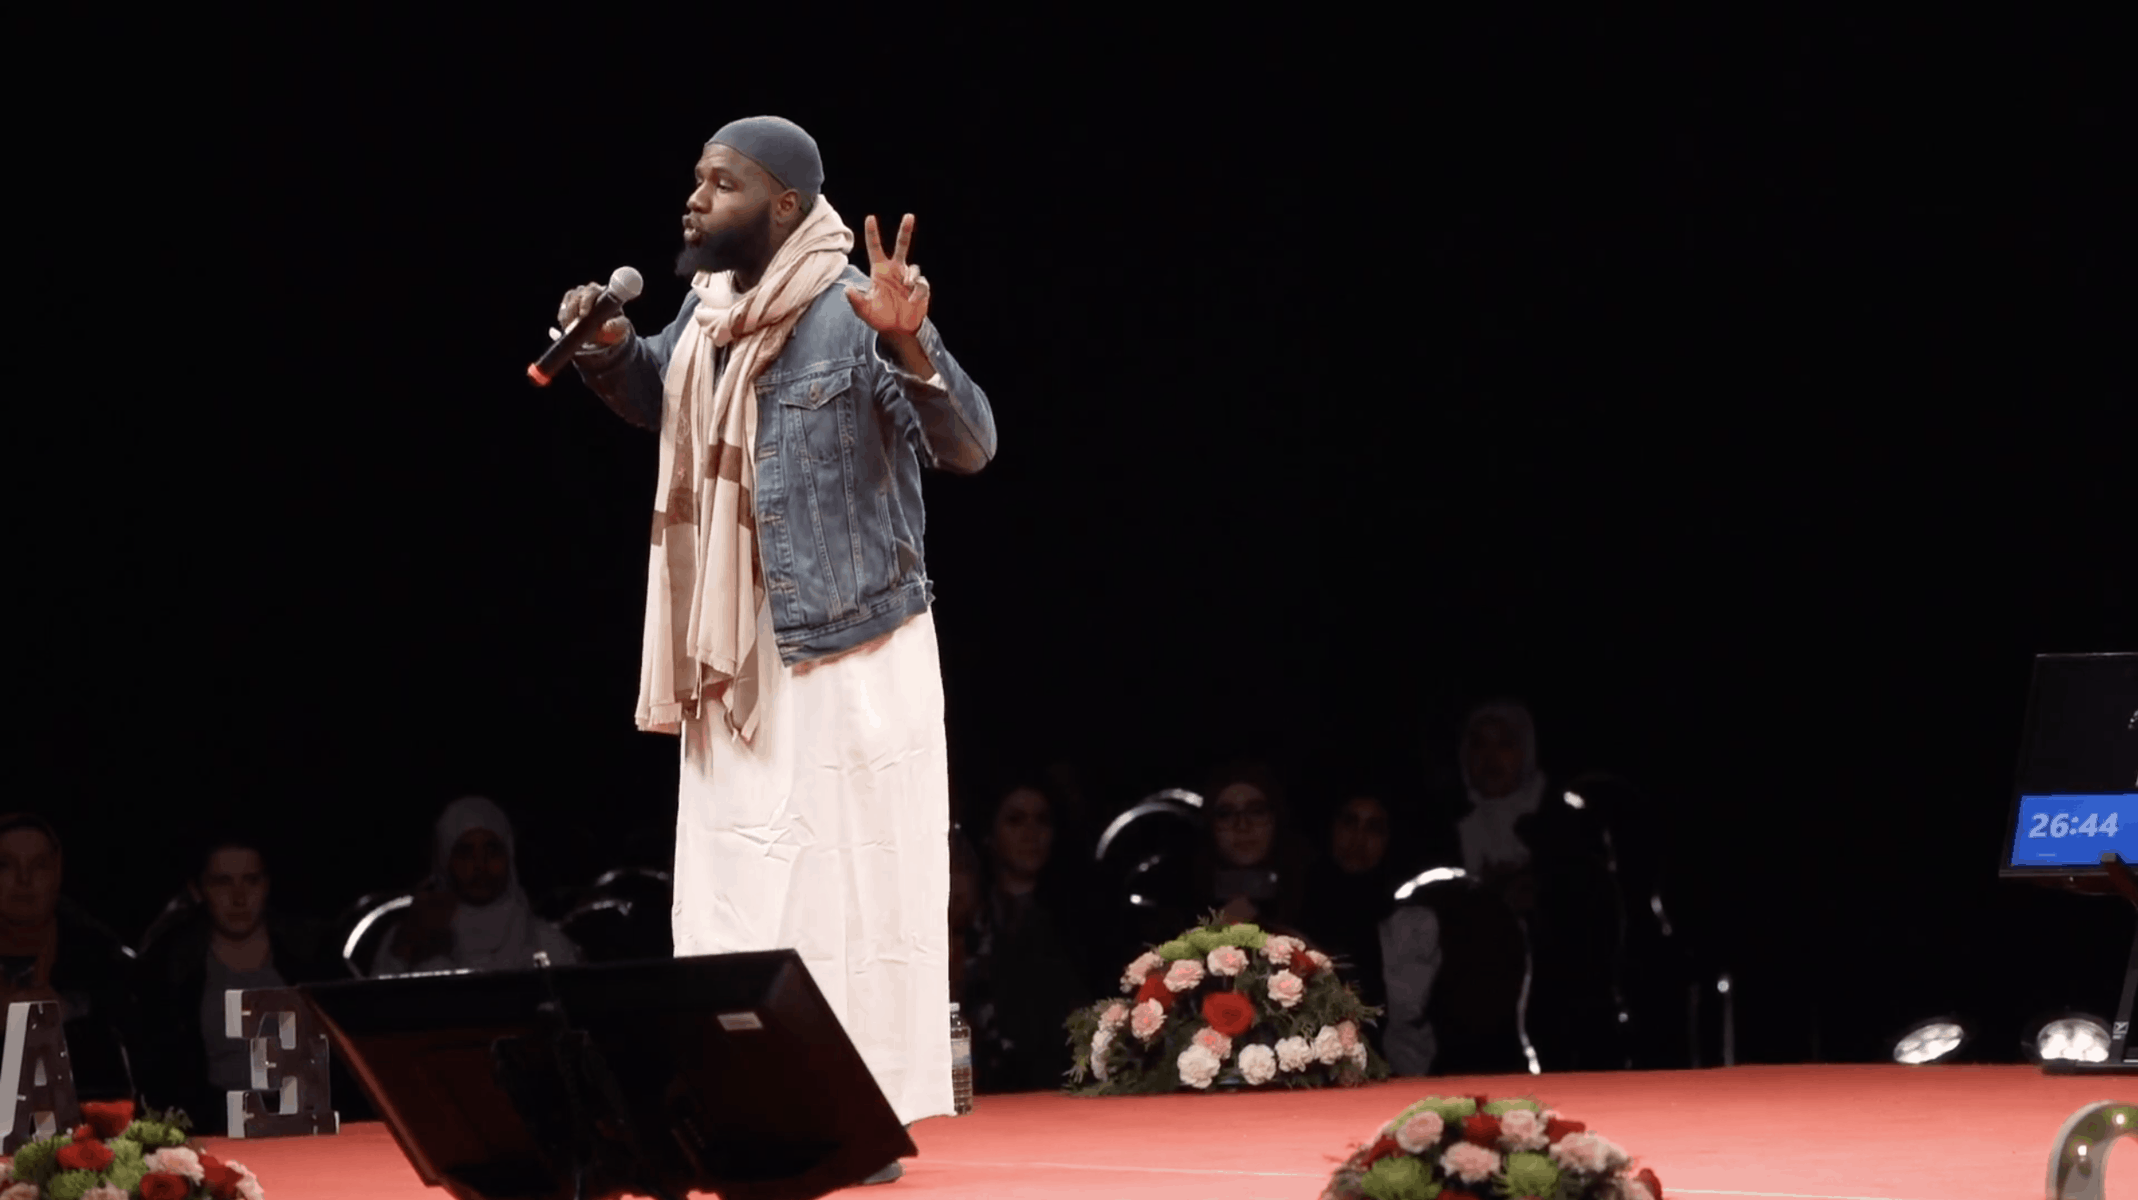 Ibn Ali Miller – The Company You Keep